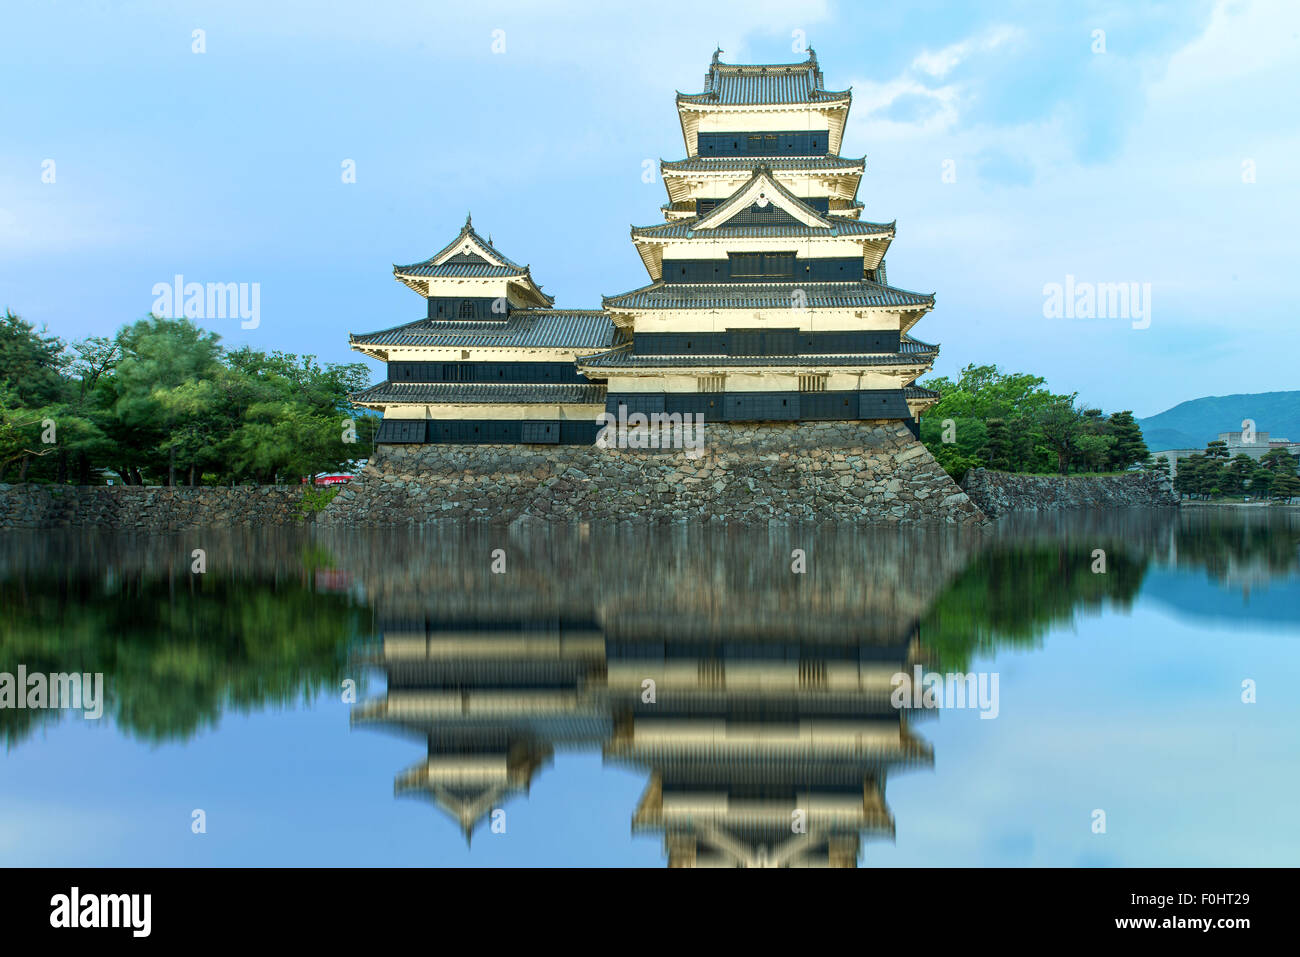 Matsumoto castle in Matsumoto, Japan - Stock Image